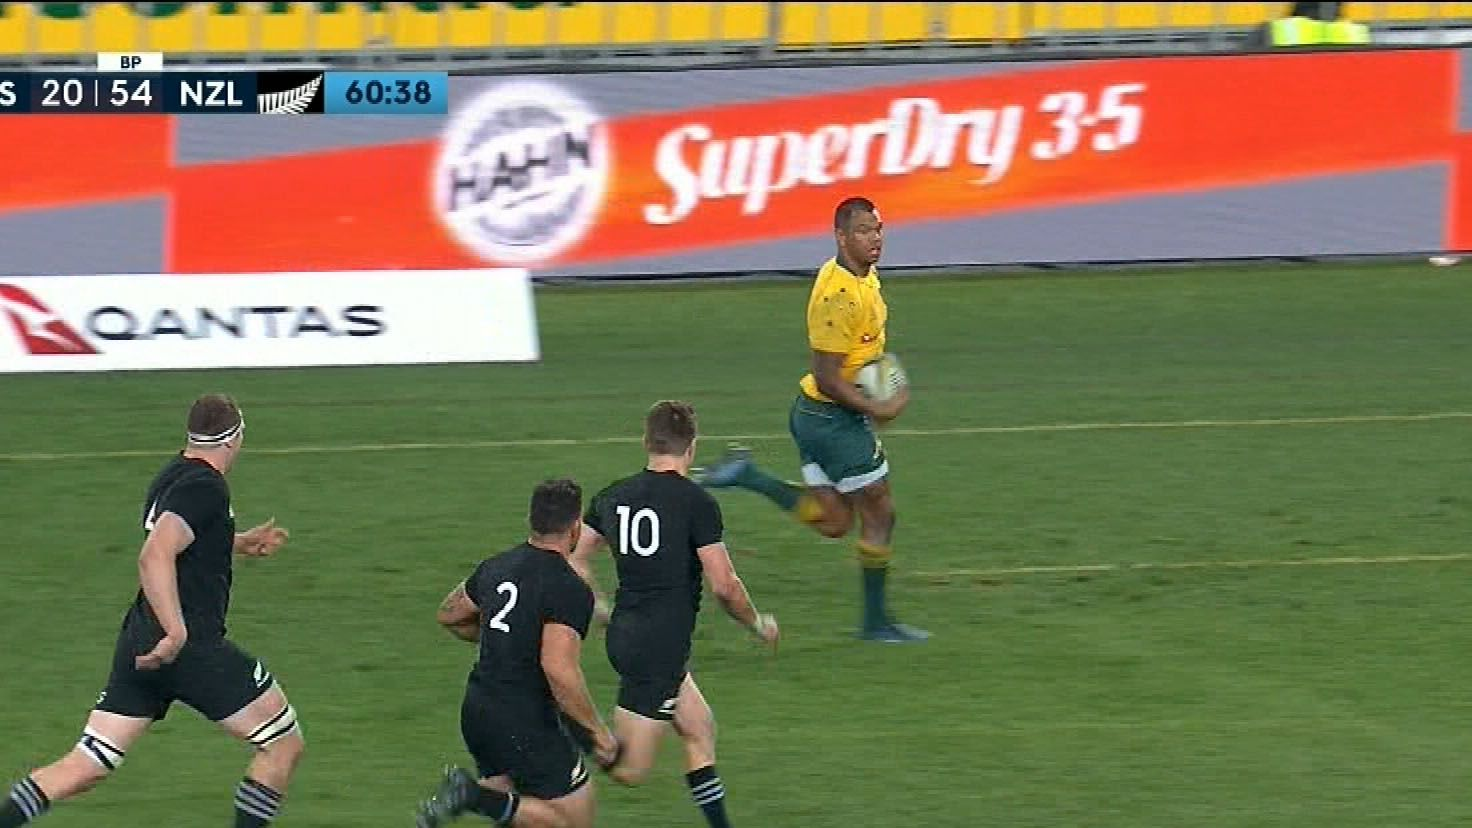 Wallabies taught a lesson